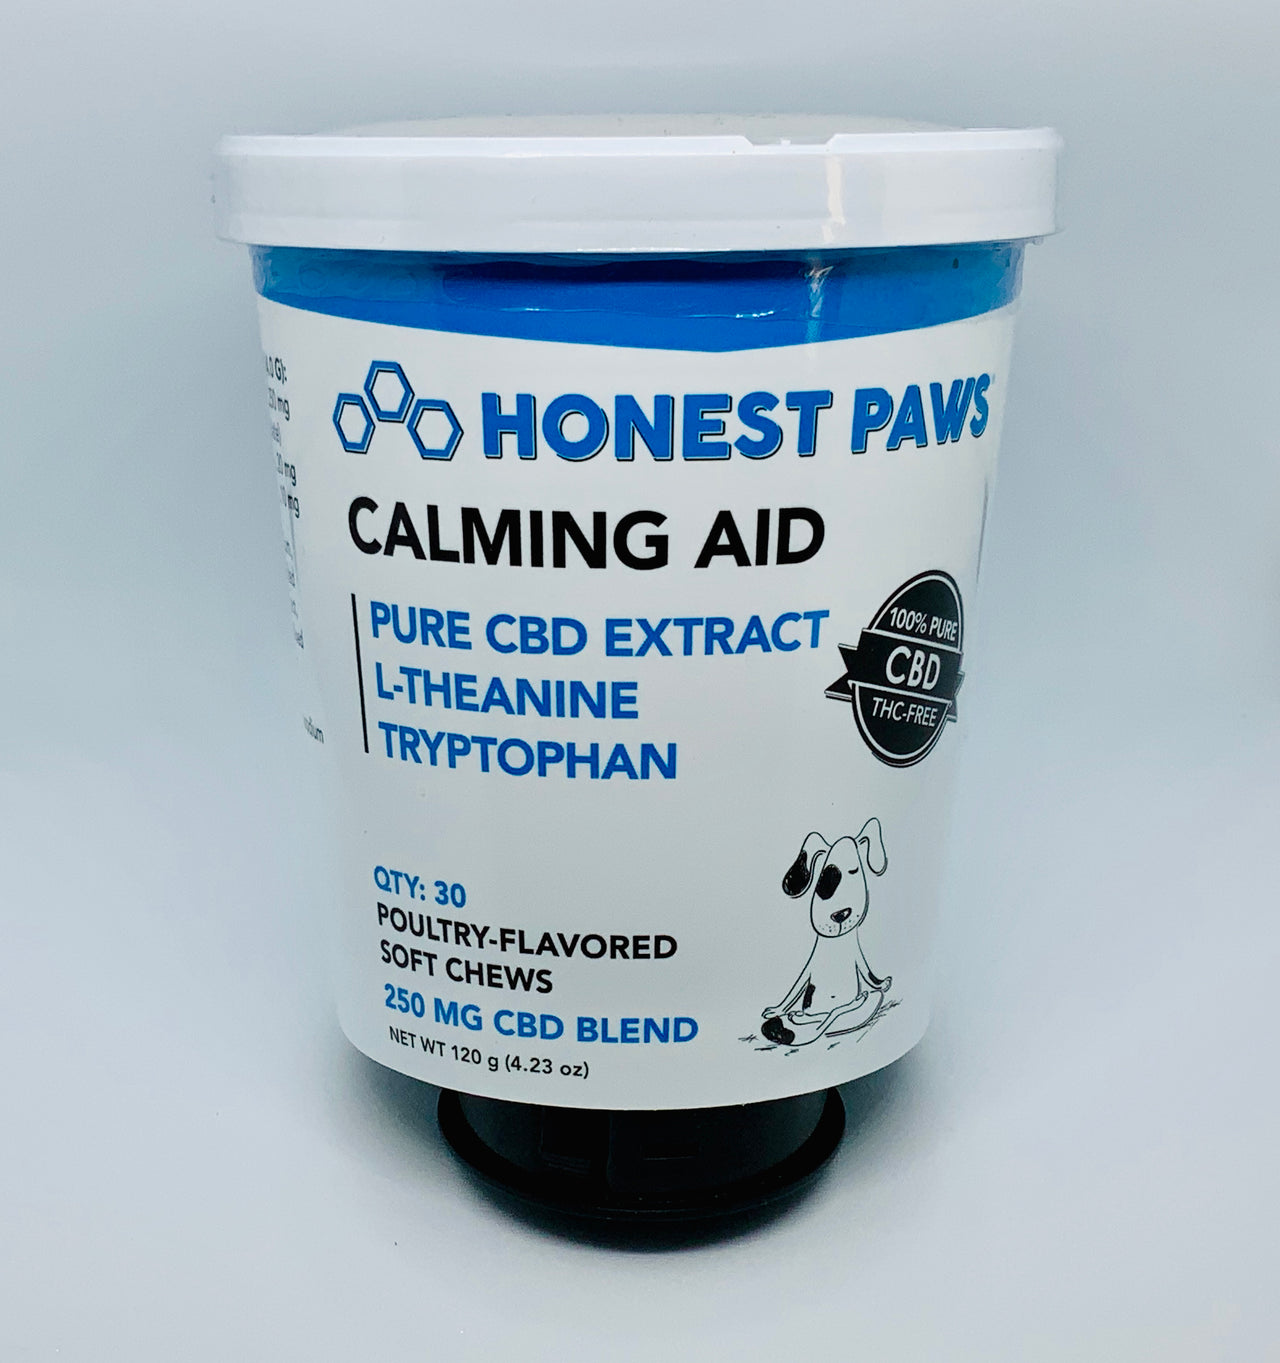 Honest Paws Calming Aid Soft Chews - Beyond Full Spectrum